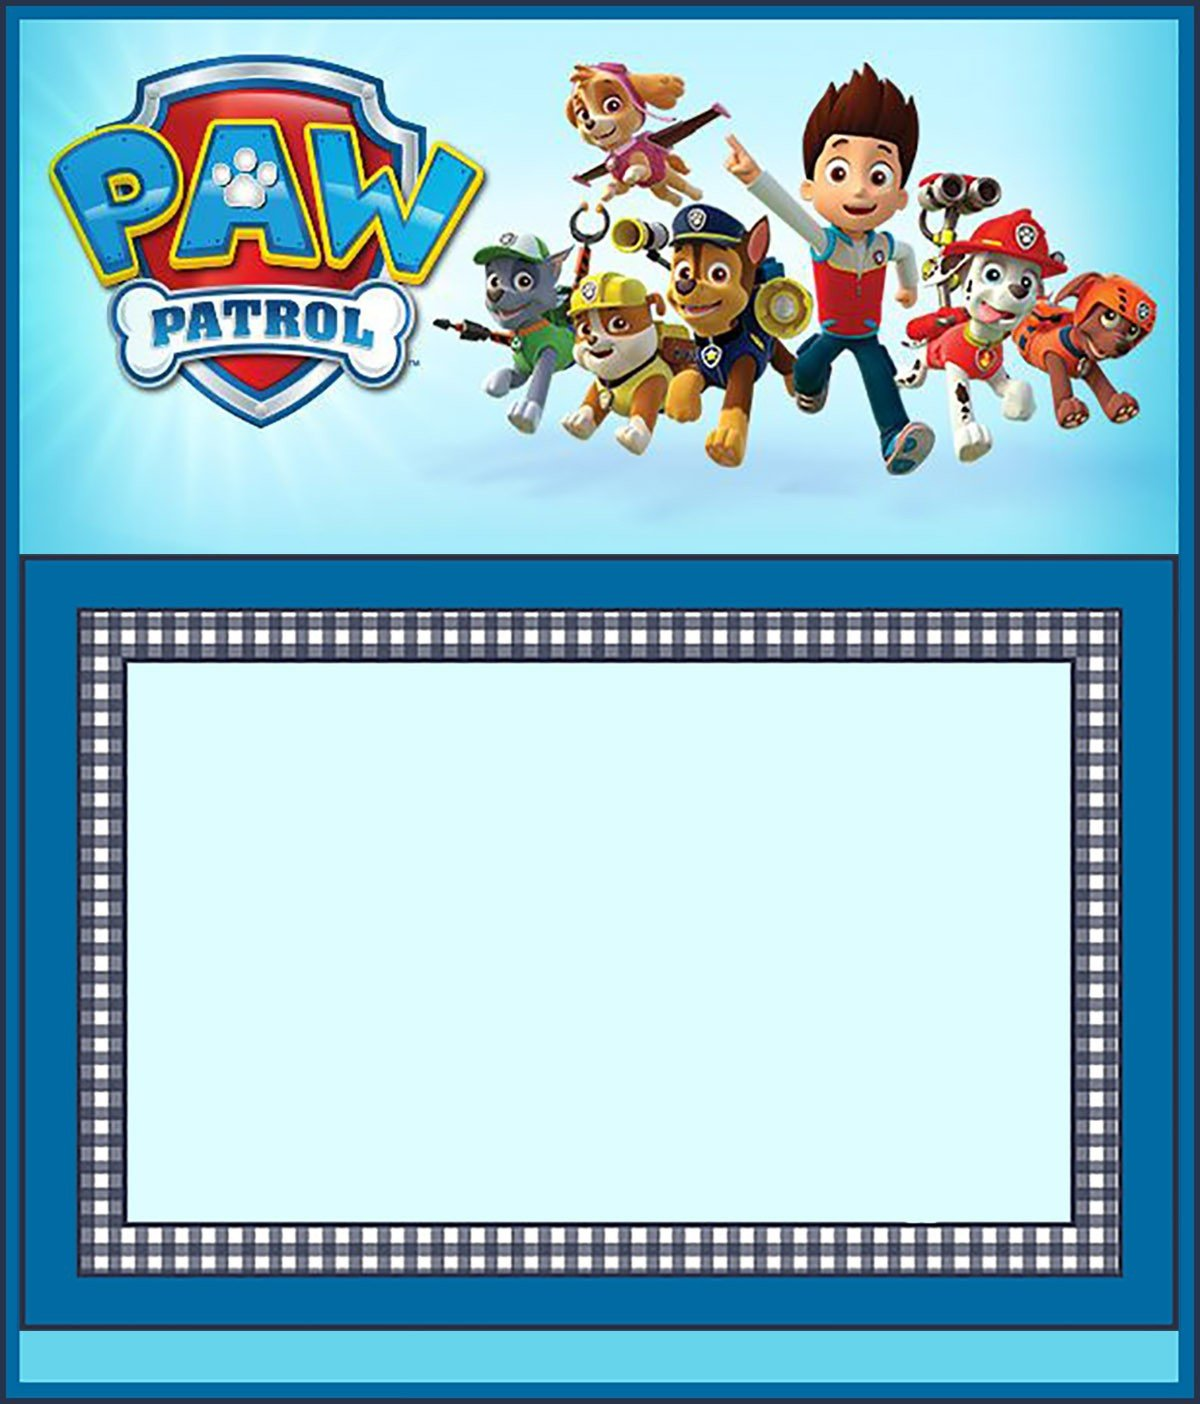 Paw Patrol Invitation Templates Make Printable Paw Patrol Invitations Using Free Templates